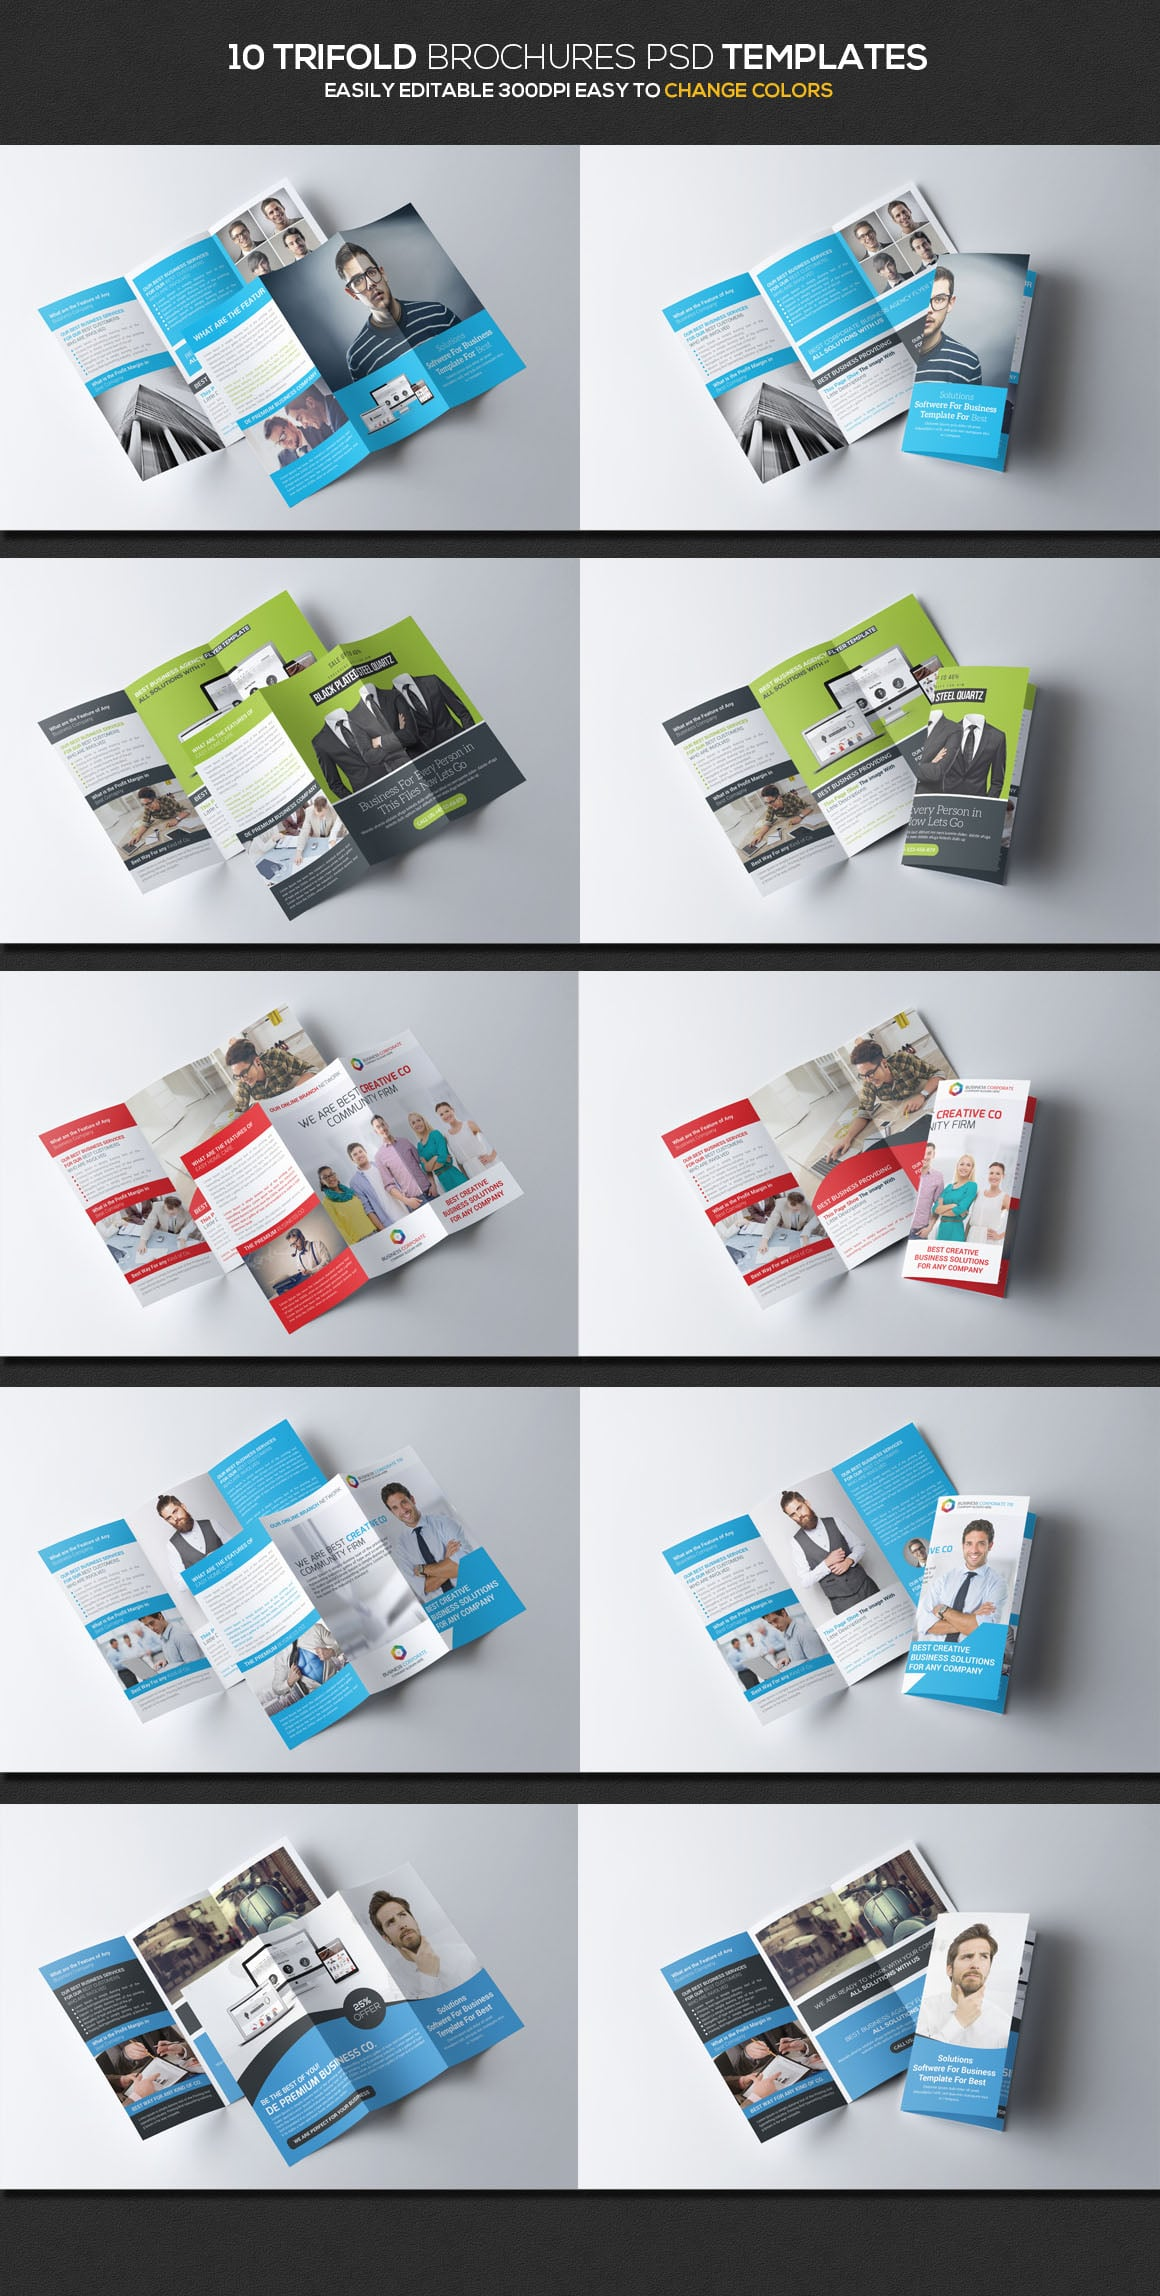 10 Trifold Brochures PDS templates